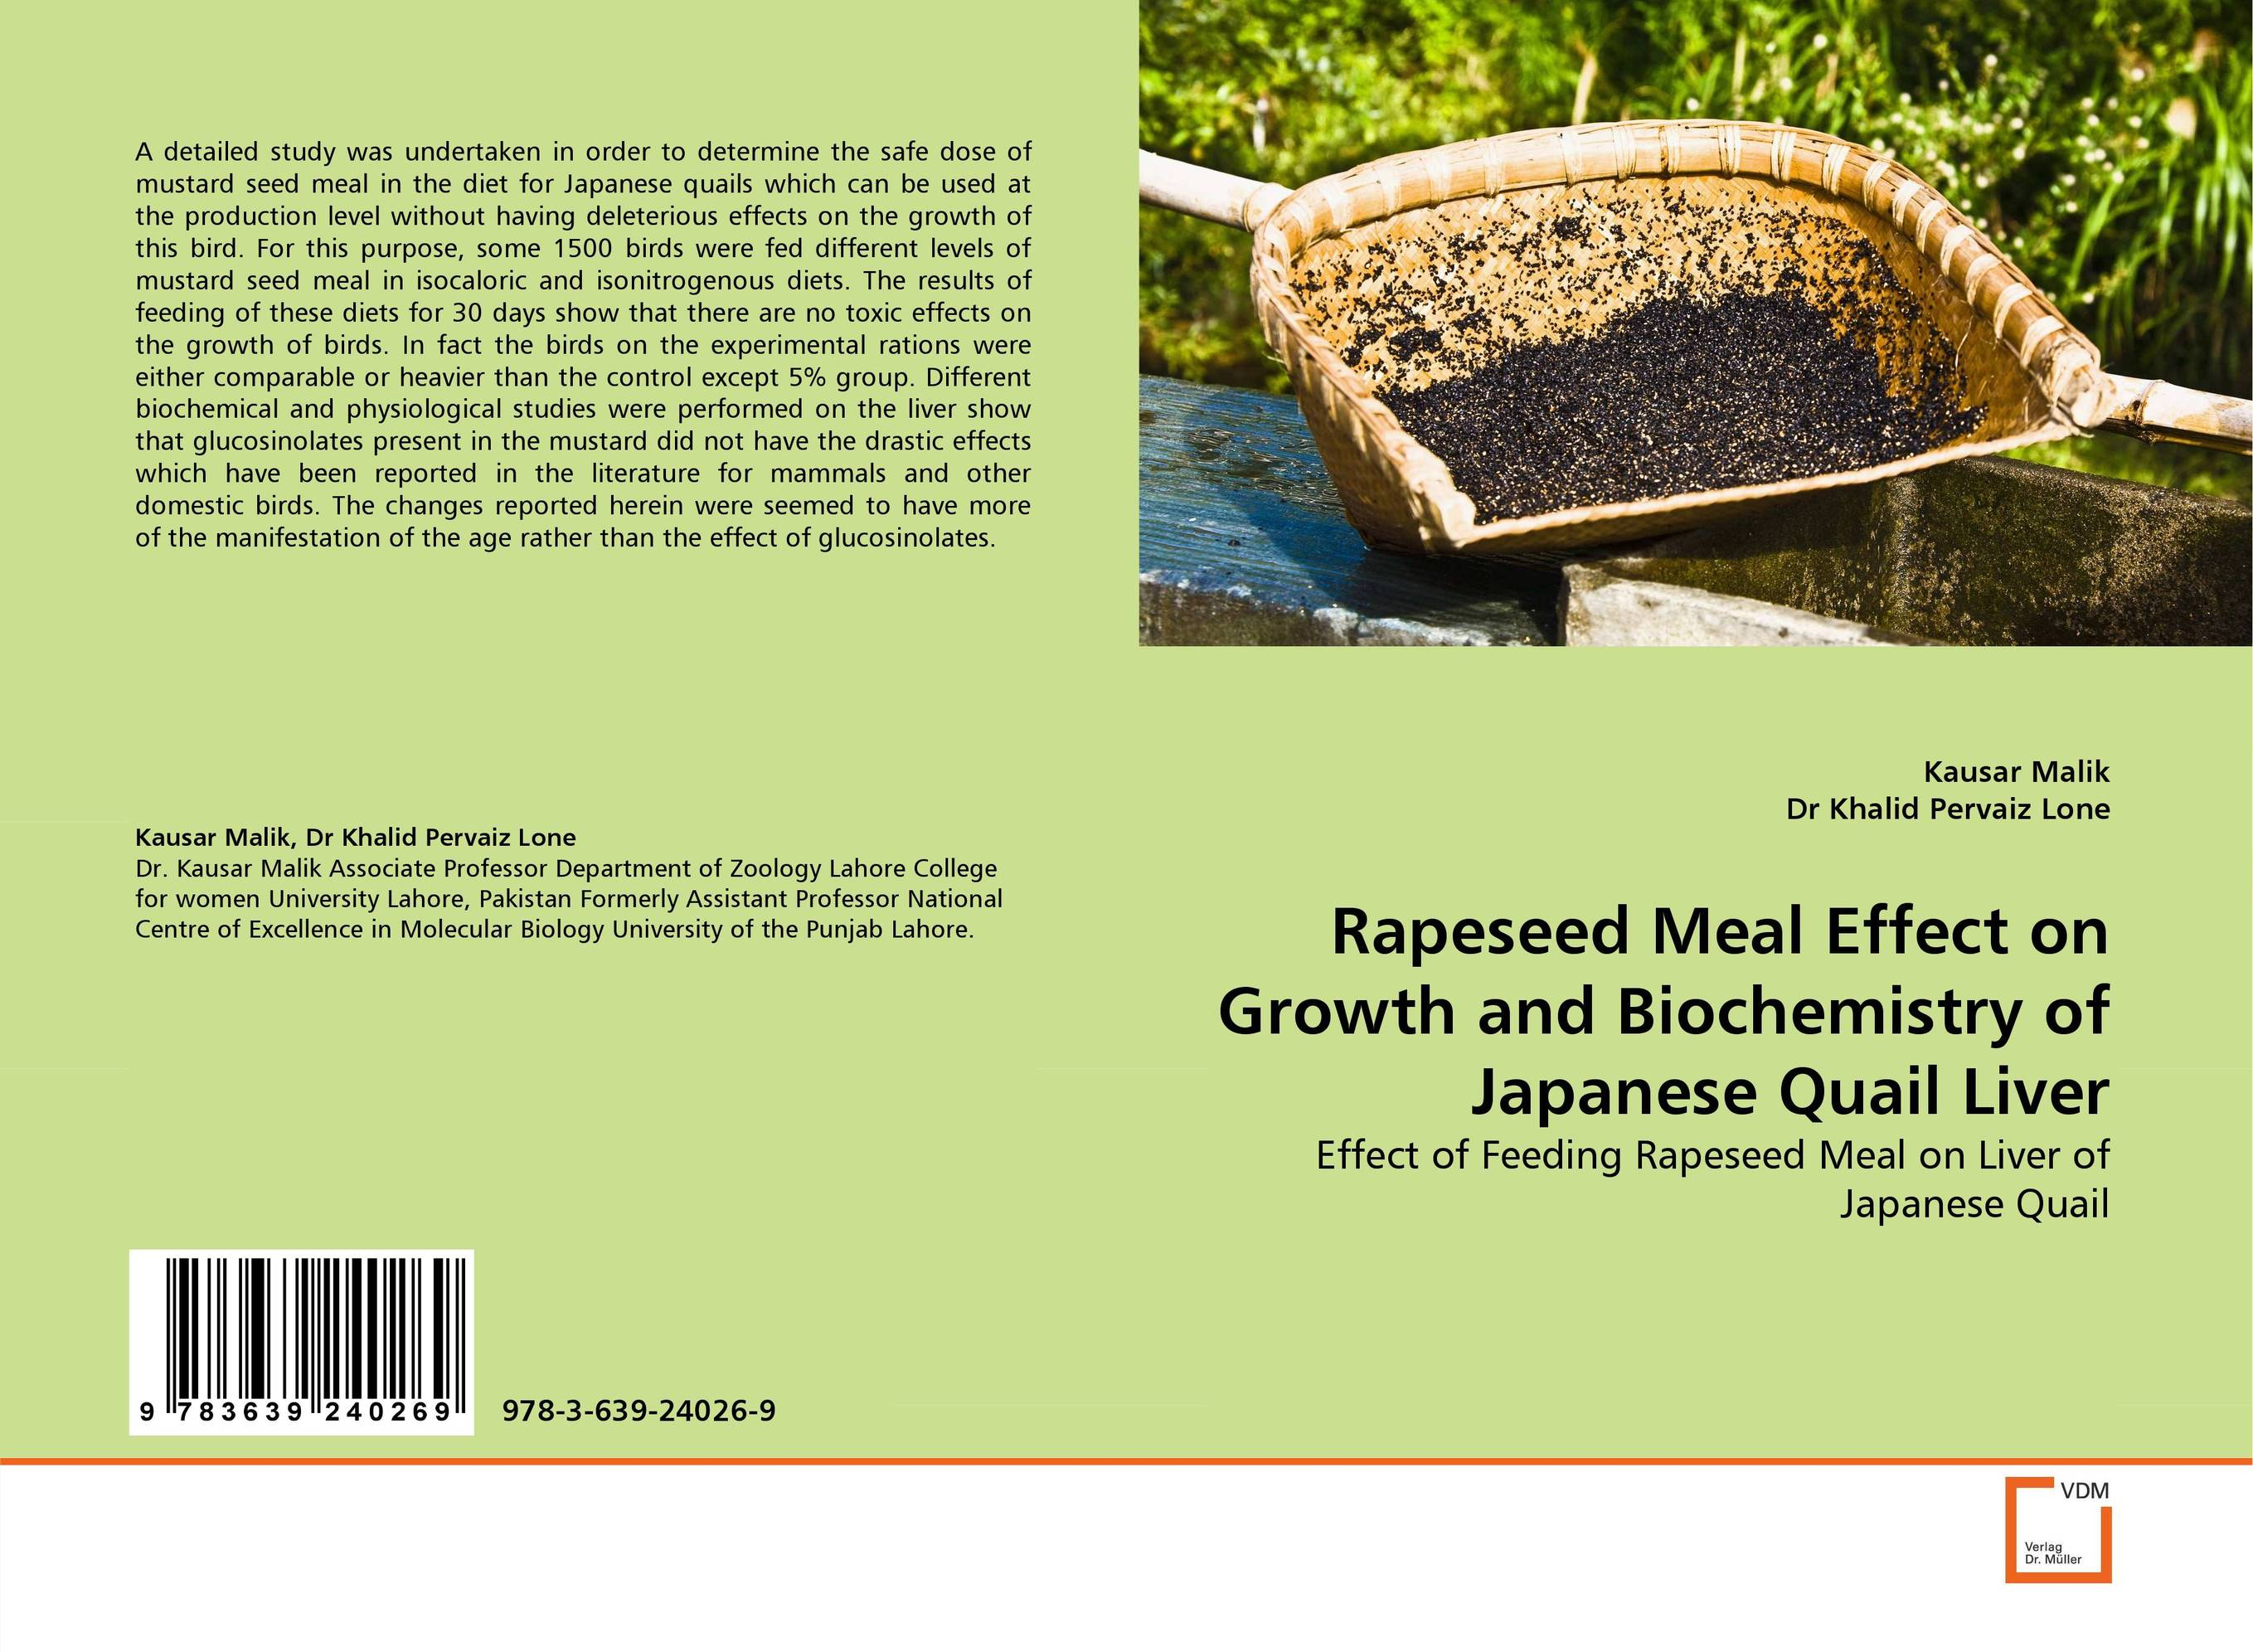 Rapeseed Meal Effect on Growth and Biochemistry of Japanese Quail Liver saeid navid effect of papaya leaf meal and vitamin d3 on meat quality